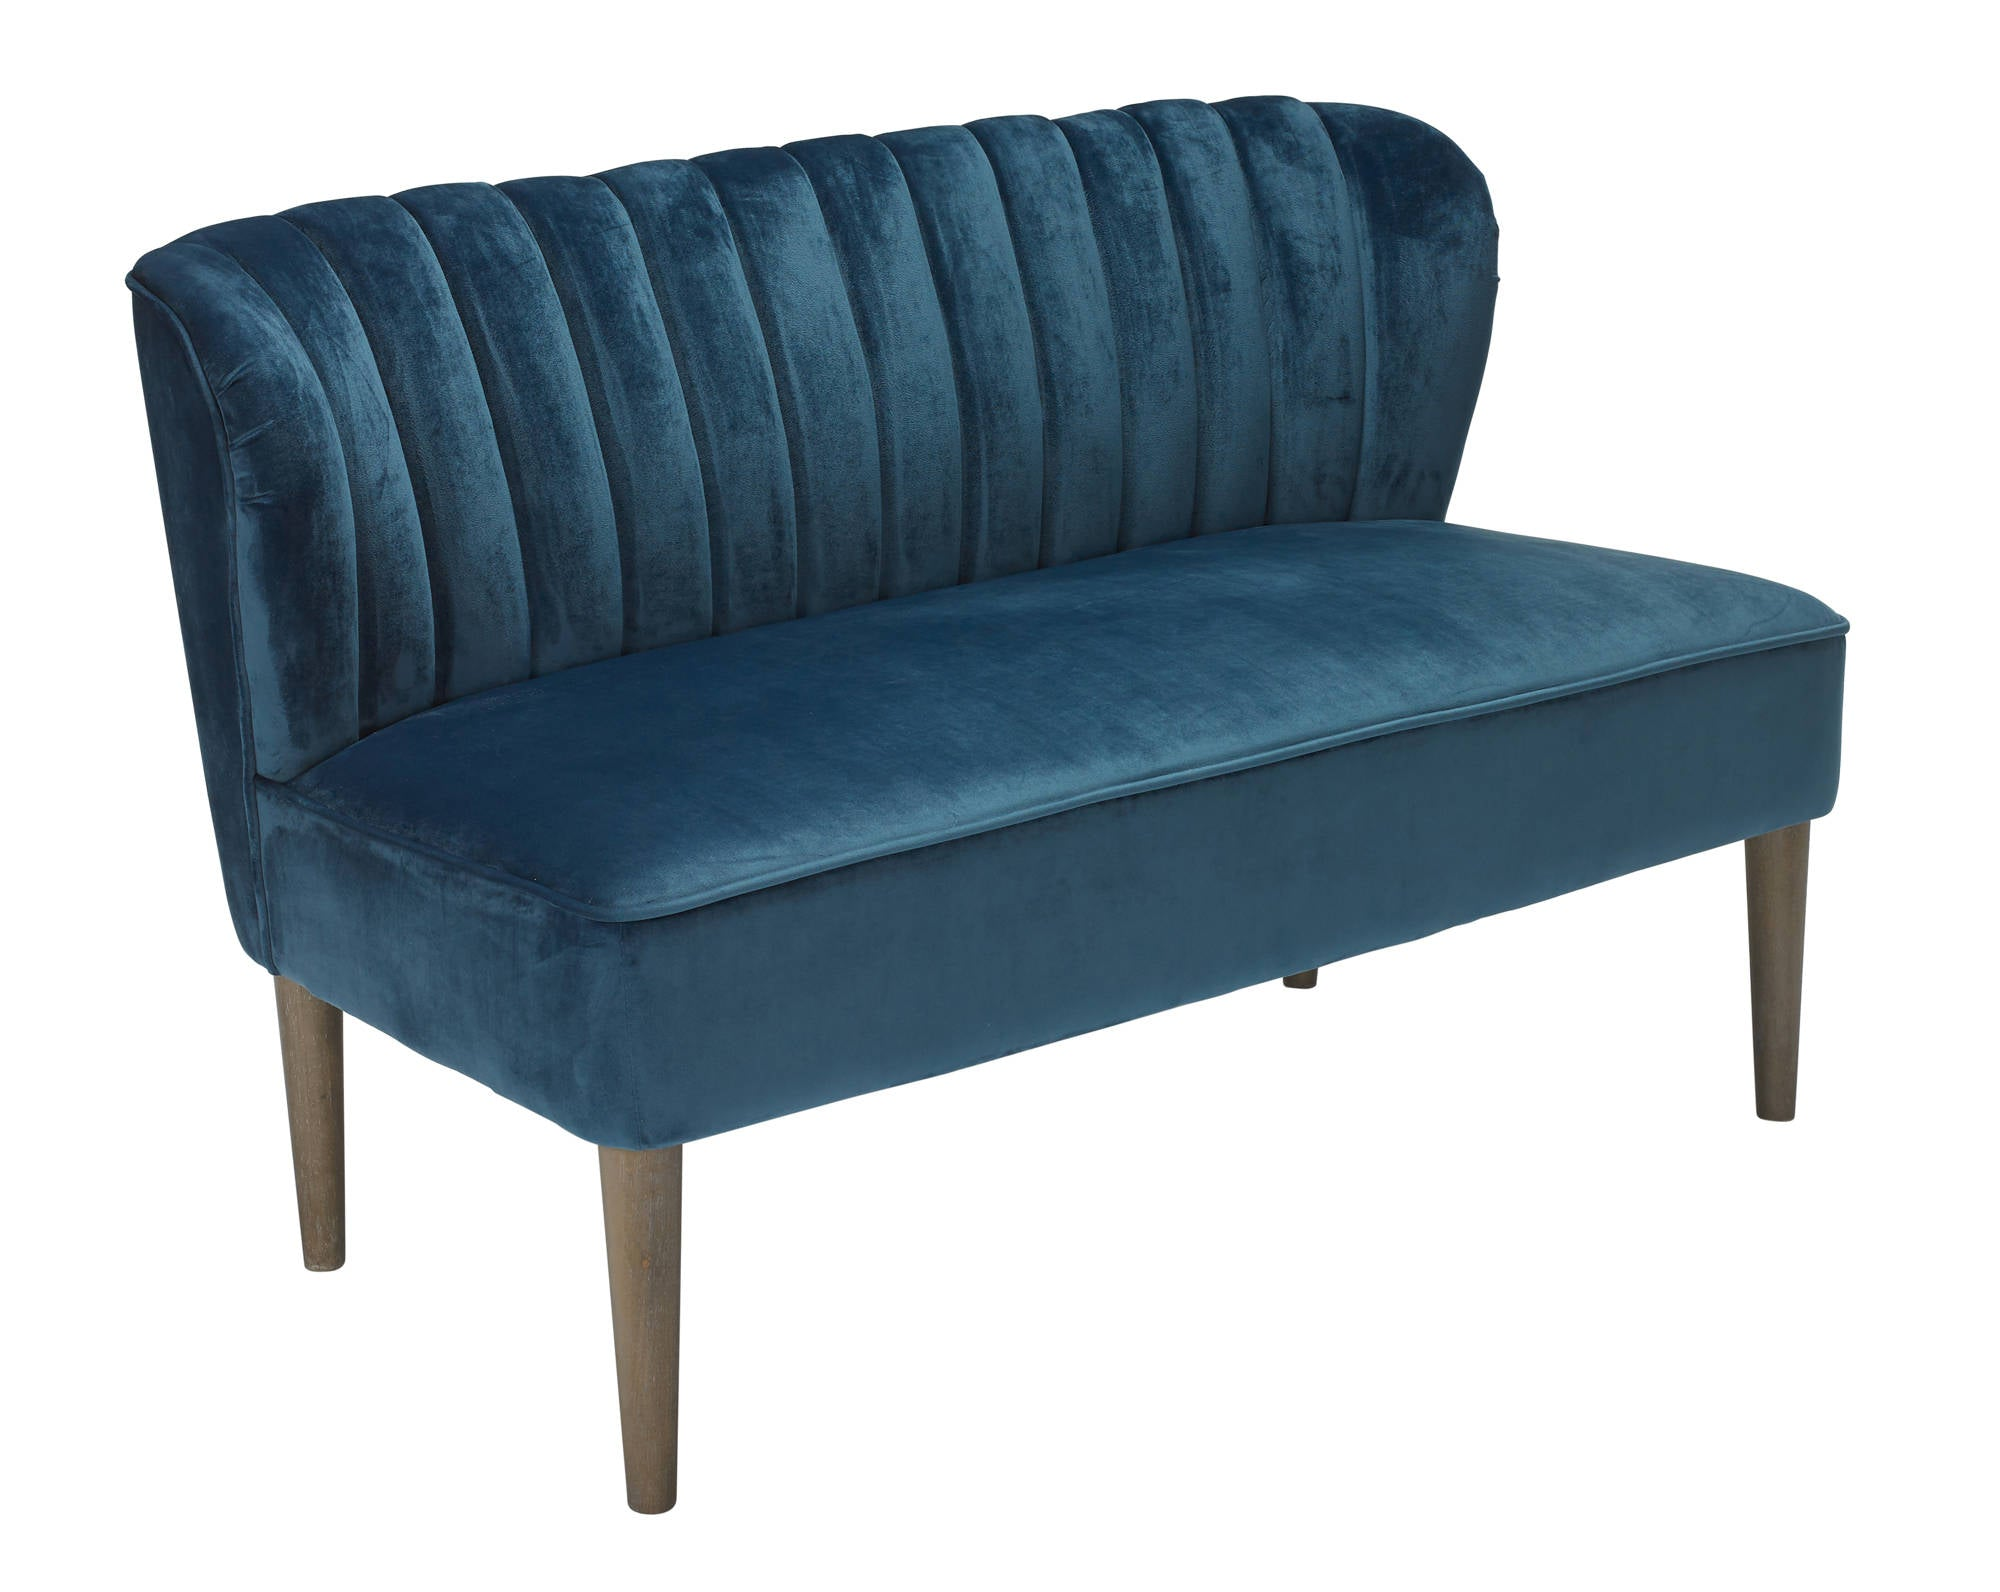 Belita Sofa in Midnight Blue - Ezzo